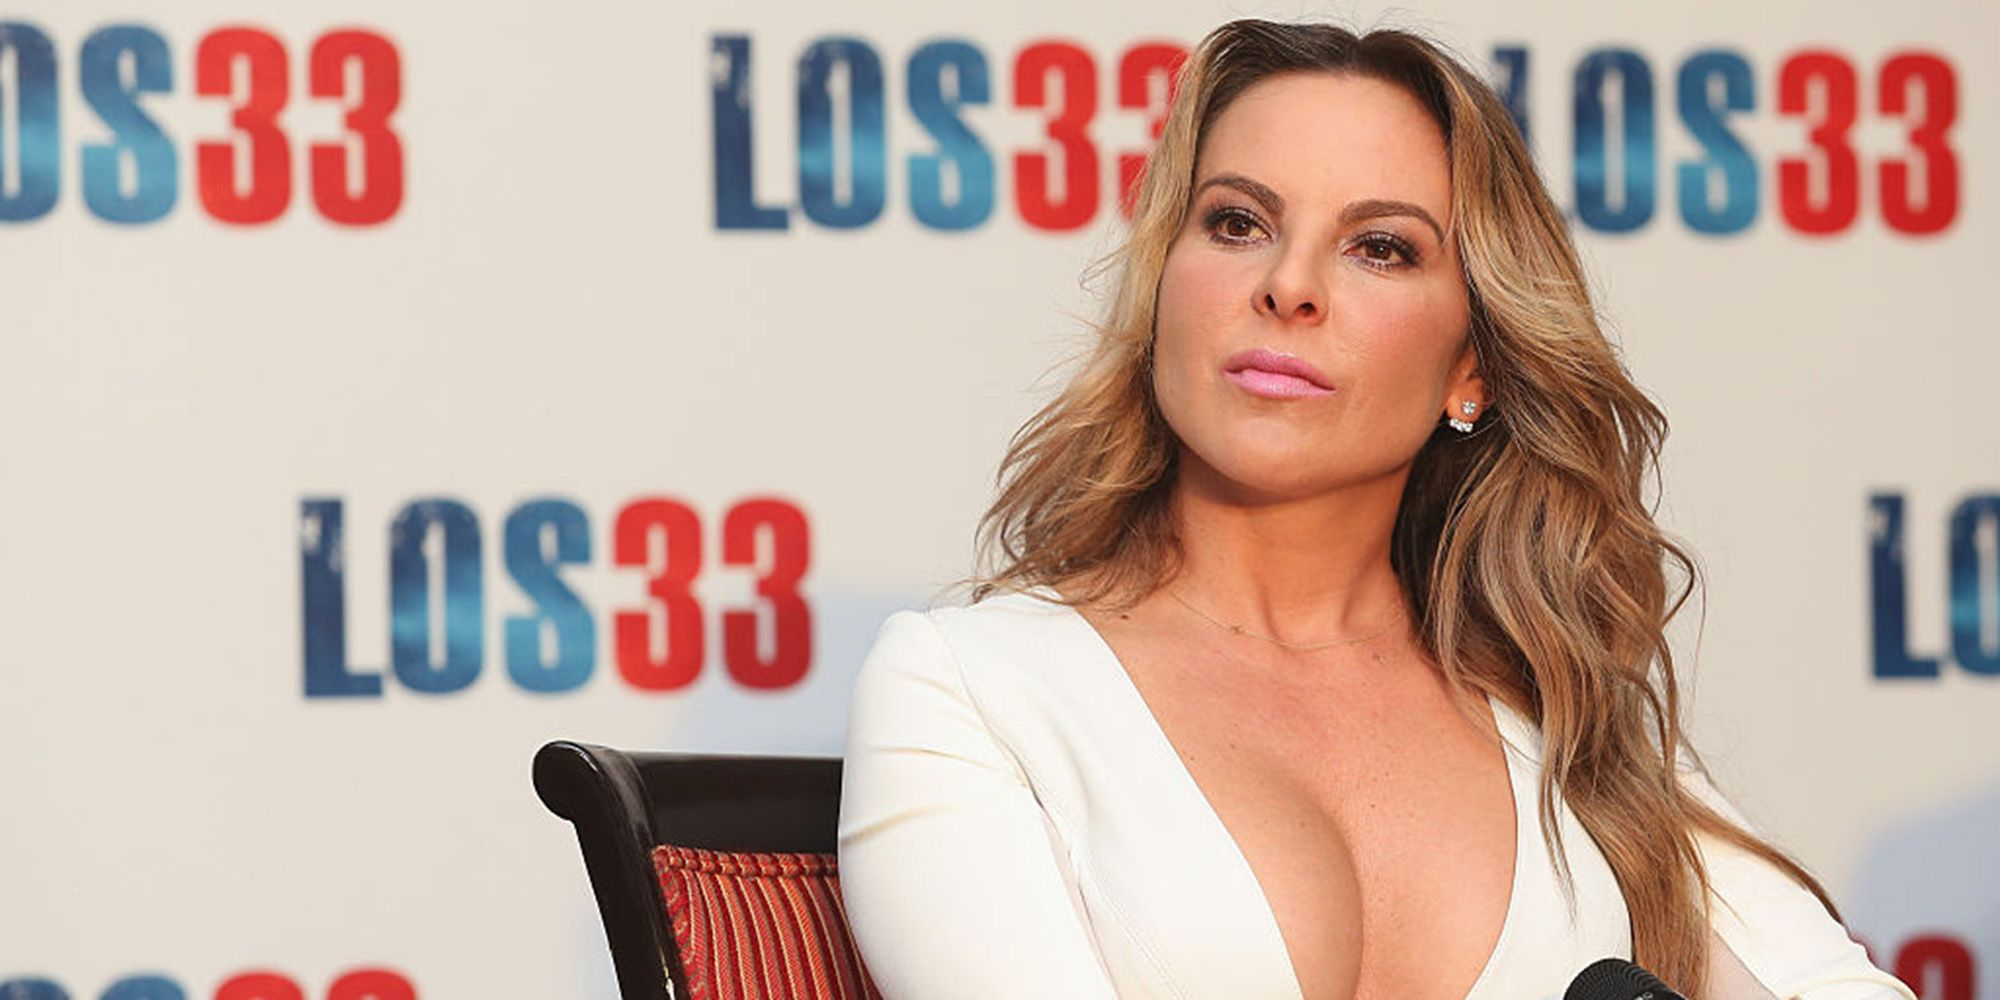 Kate del Castillo Speaks Out For the First Time About El Chapo and Sean Penn